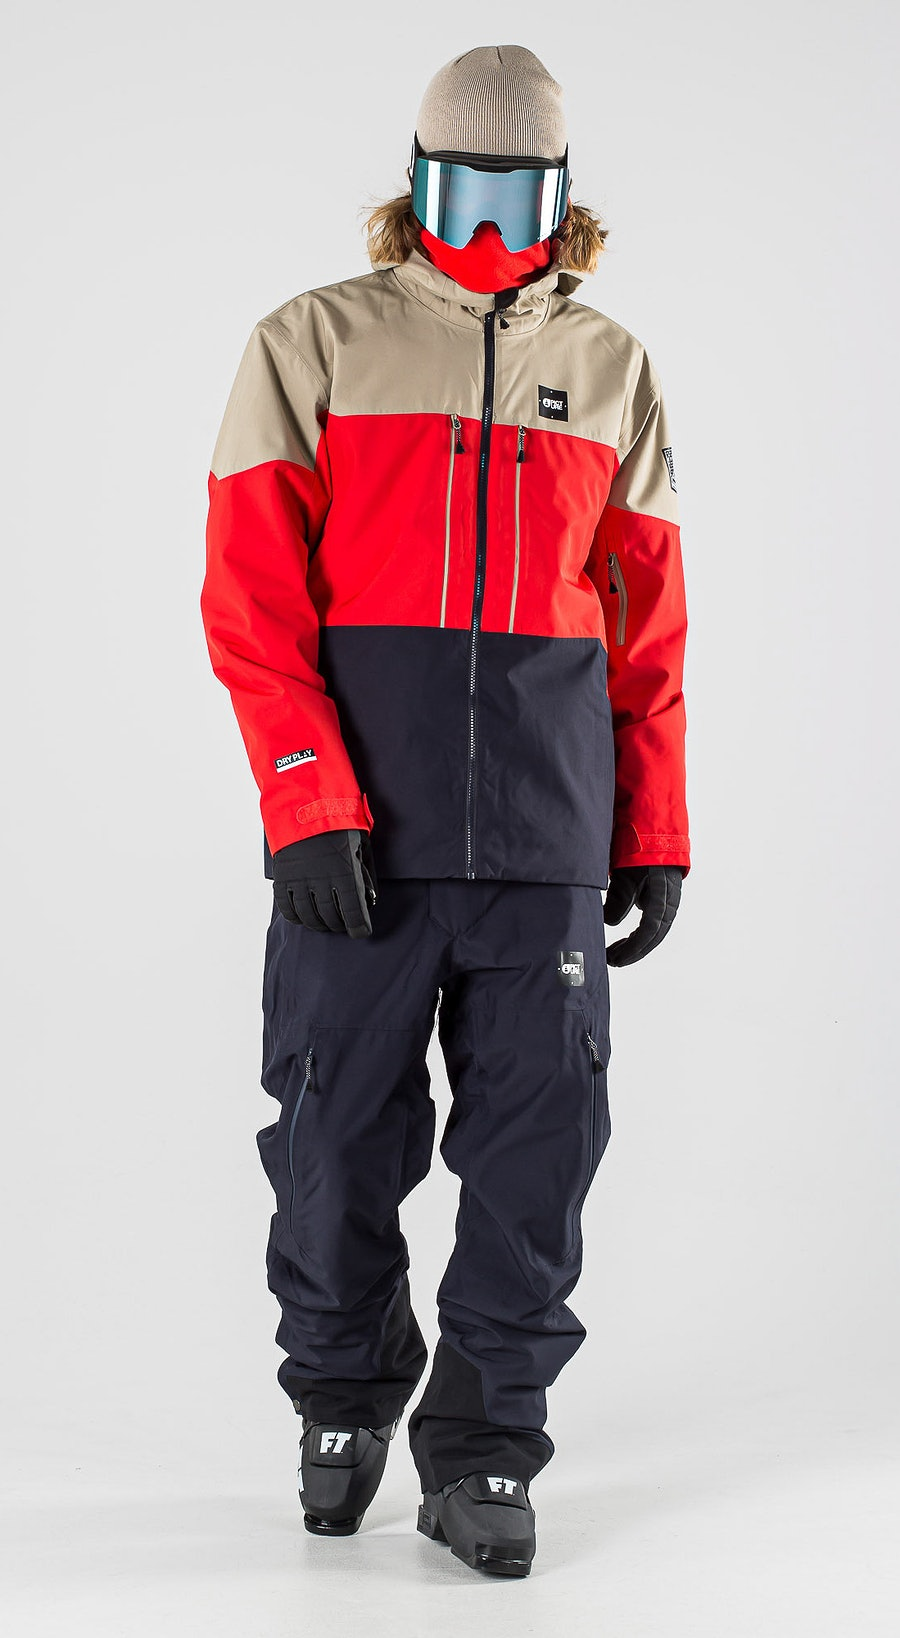 Picture Picture Object Red Dark Blue Ski Clothing Multi